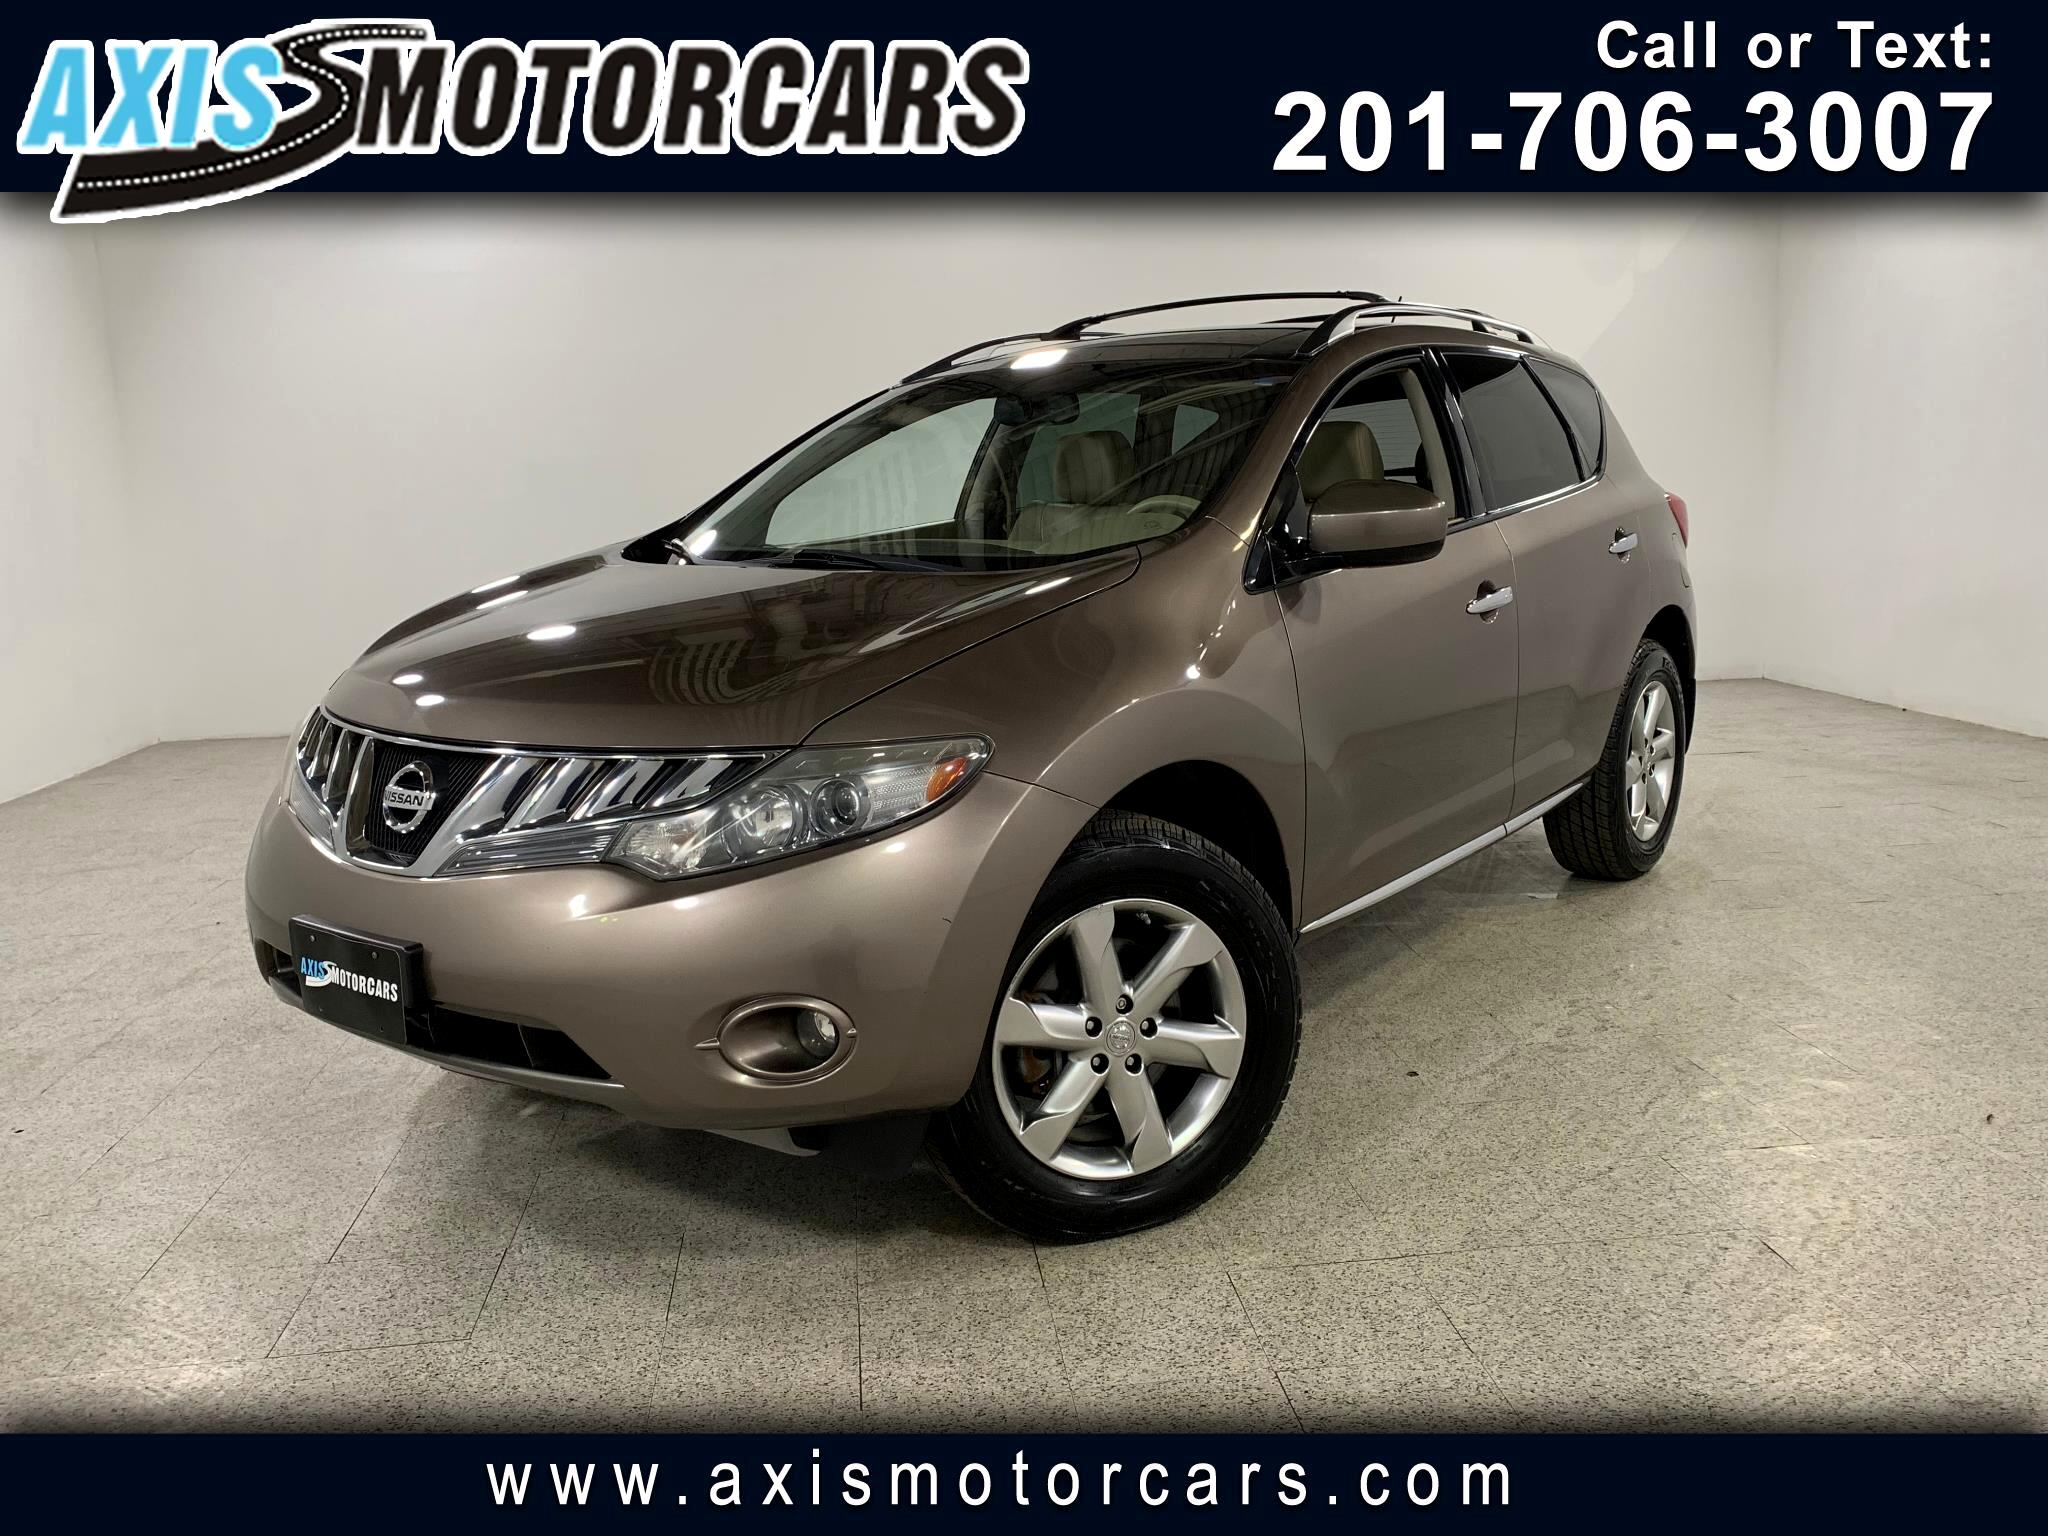 2010 Nissan Murano SL w/Bose Sound System Panoramic Roof